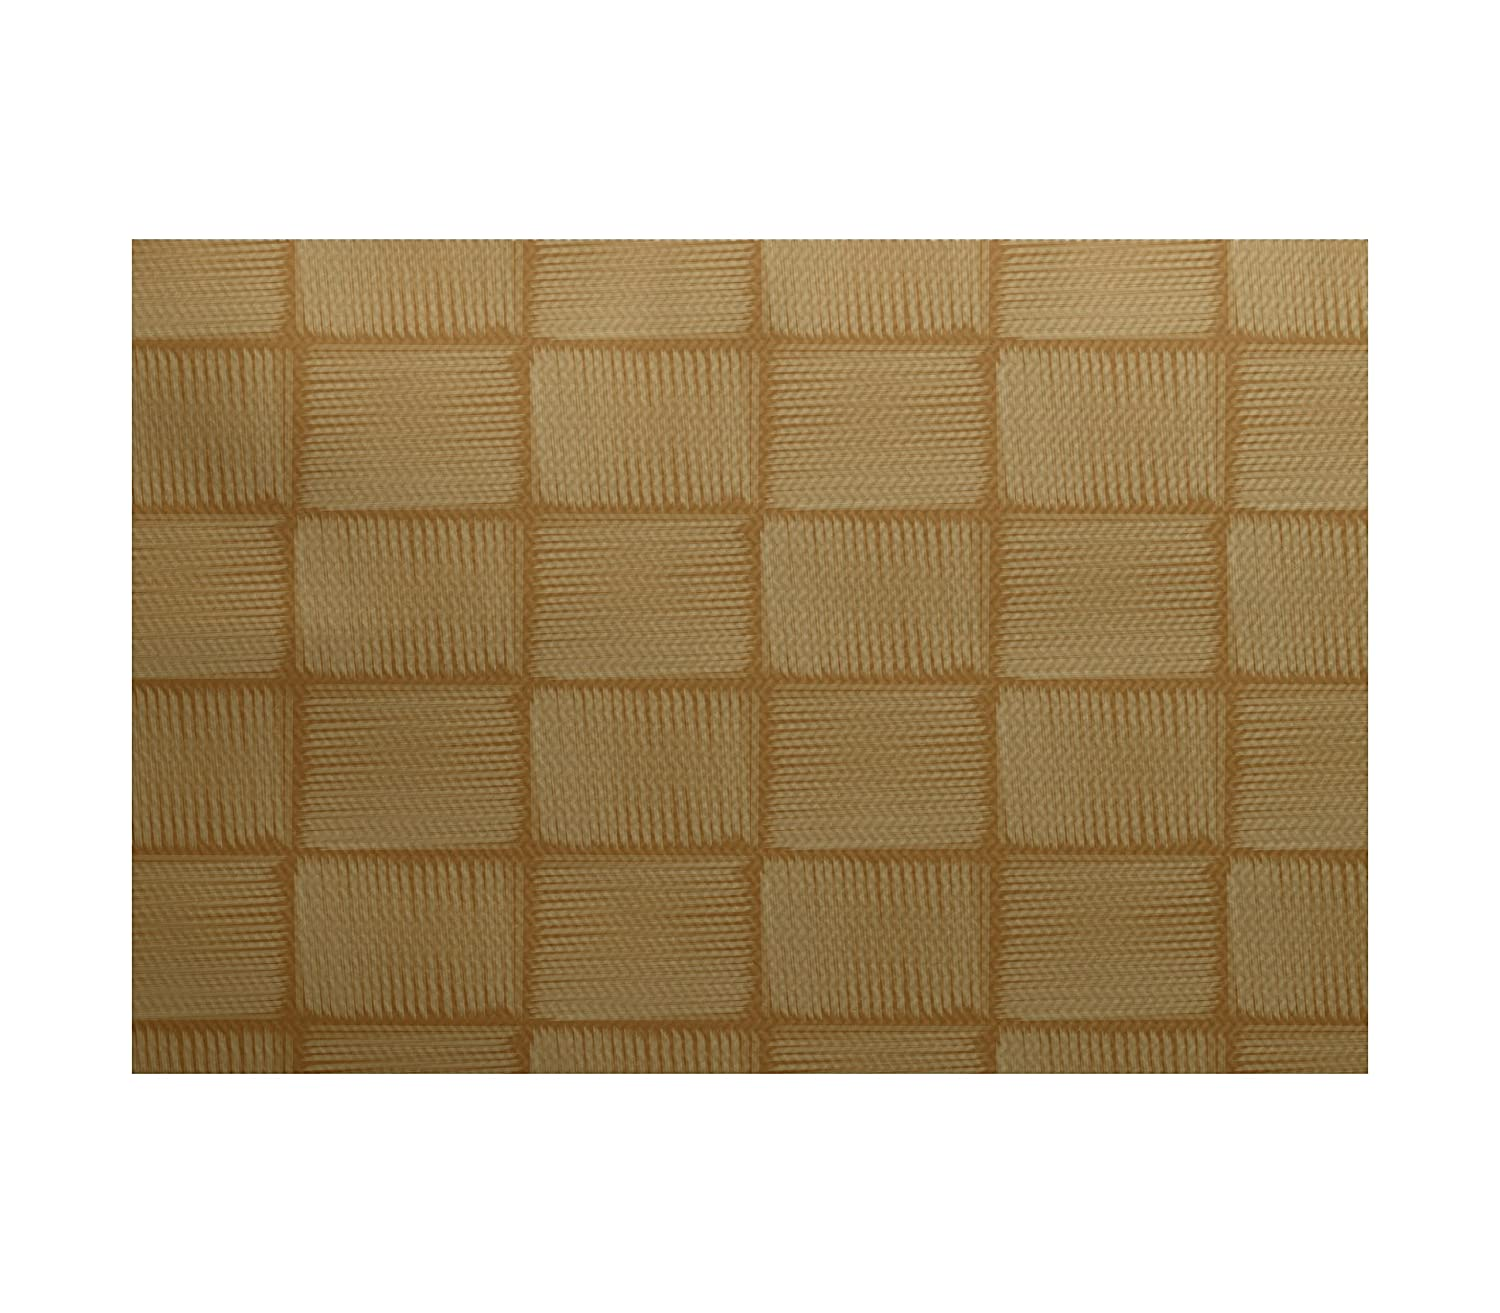 """Easy To Assemble Can Be Decorated White 5 /½/""""x1 /¾/"""" Cookies 24 Boxes SS-DAR-1404-27 Perfect for Packing Wedding Cake Slices Candy Favors and More To Take Home Darice Victoria Lynn Cardboard Cake Box"""